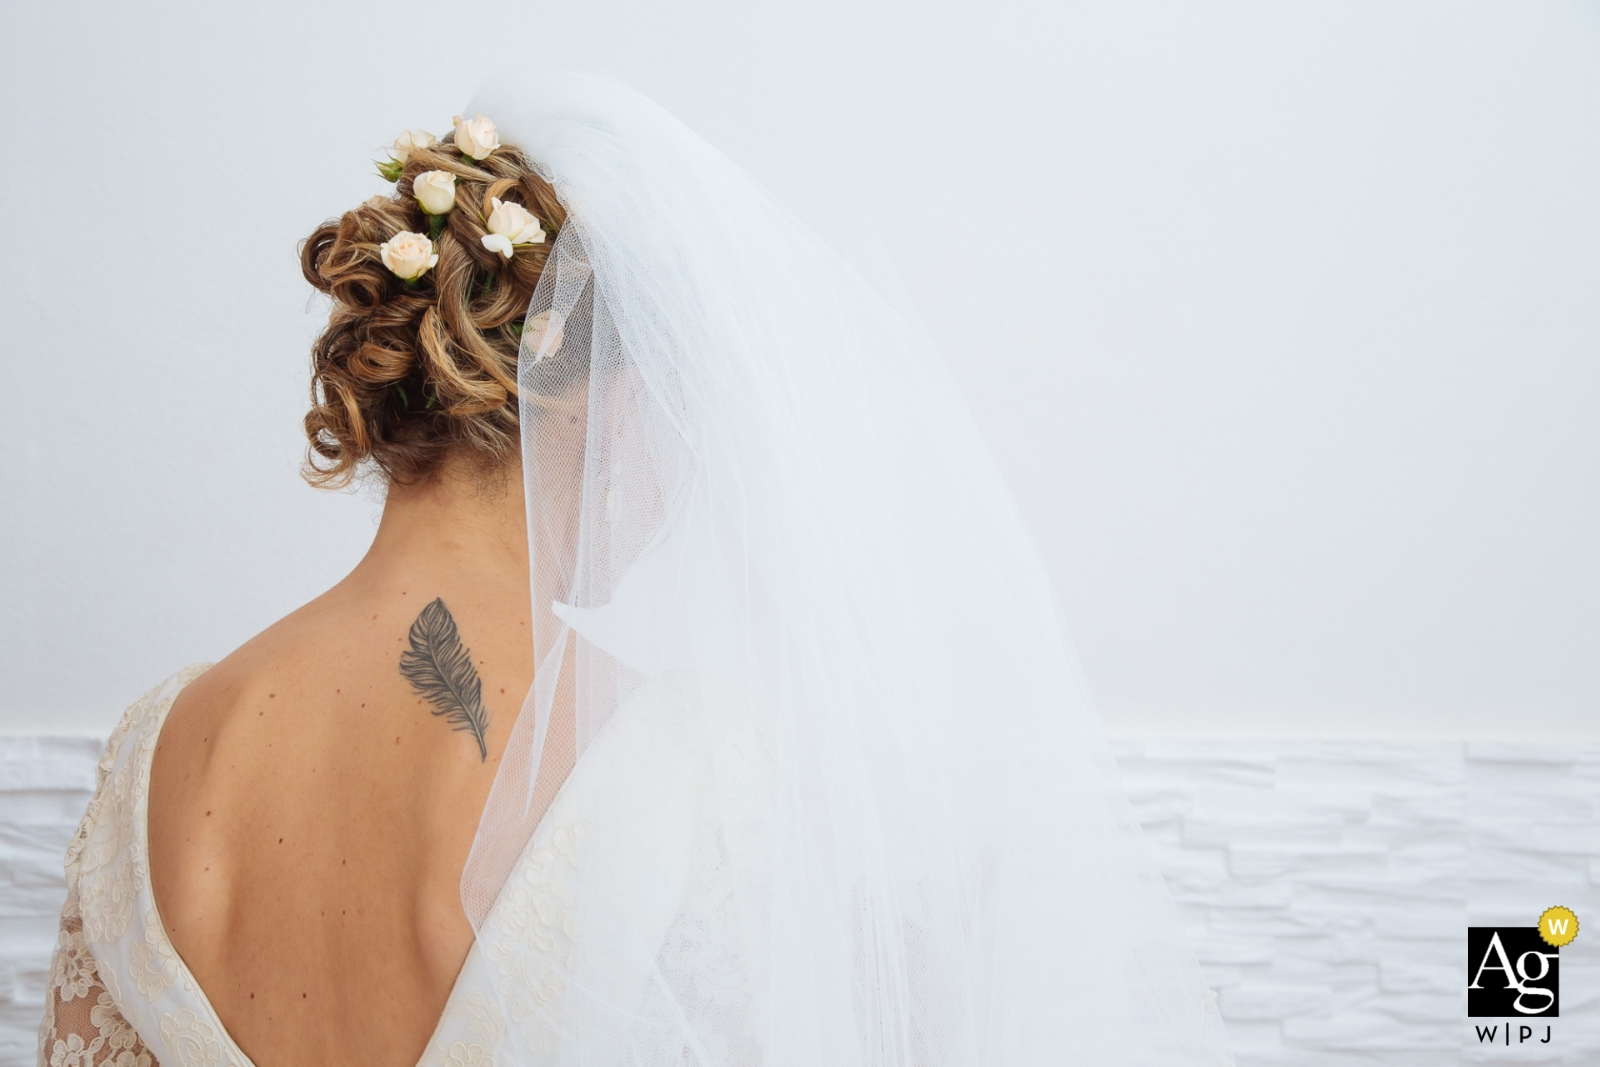 Ortigia wedding day photography | Siracusa Bride with her veil and a feather tattoo on her back